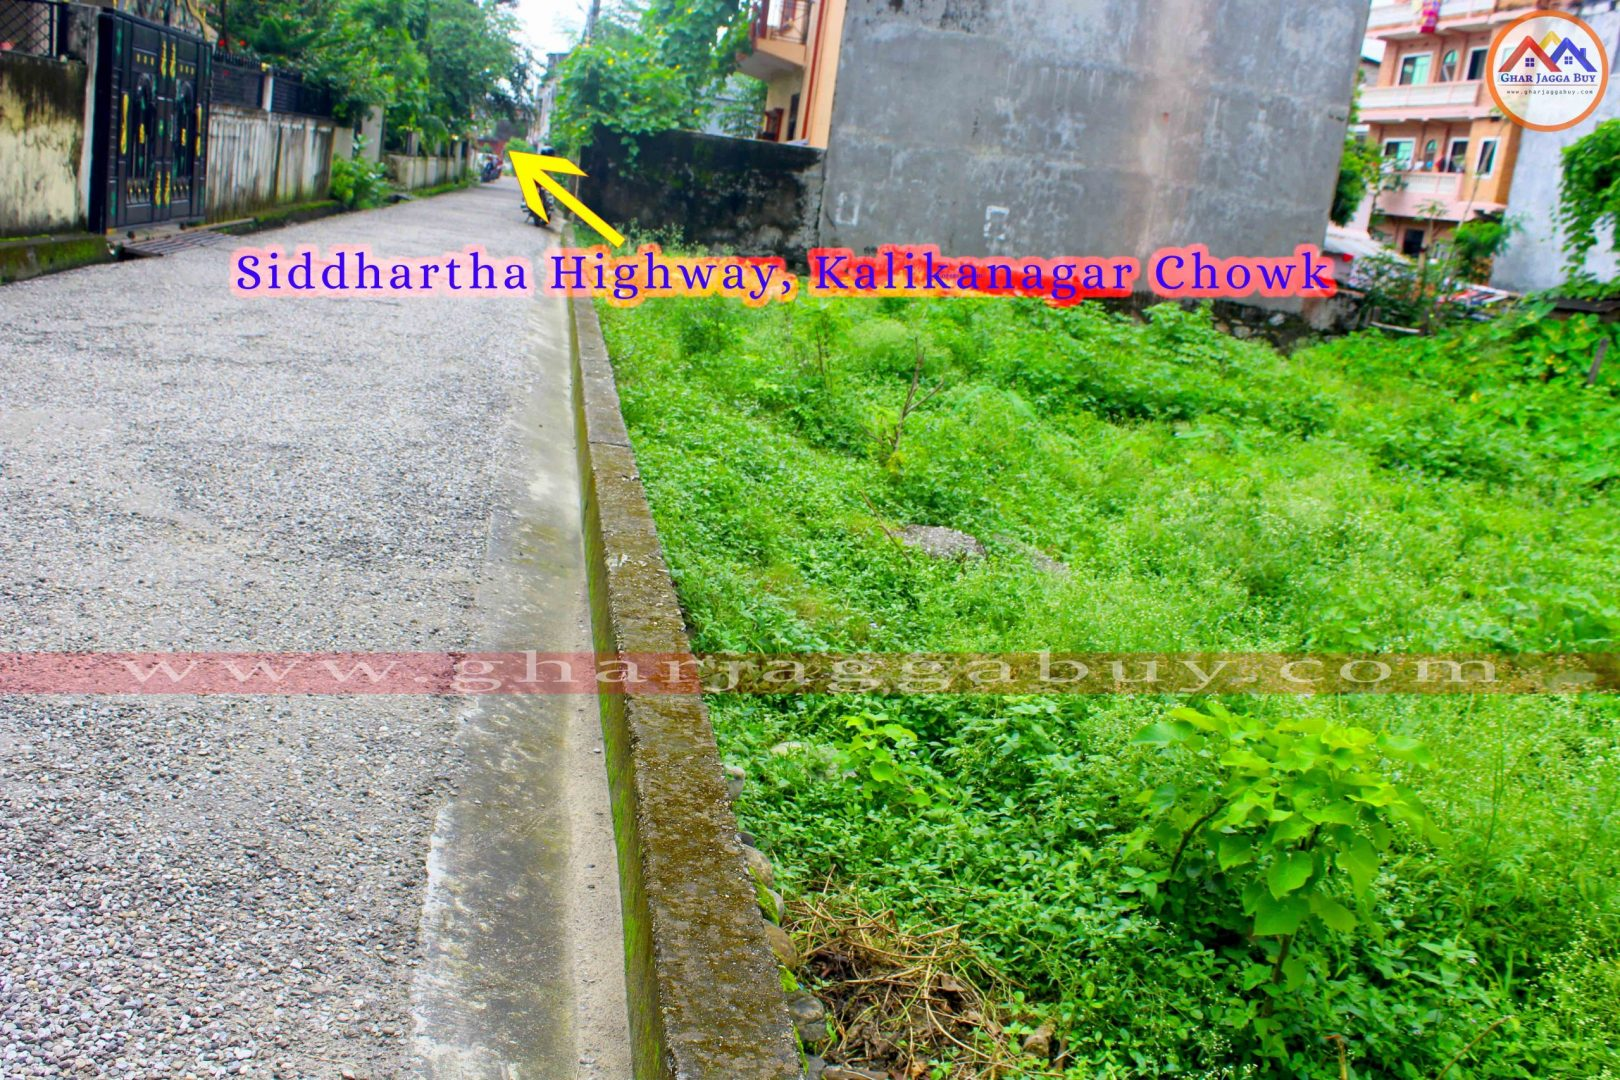 Land for sale in Butwal, Kalikanagar, Rupandehi